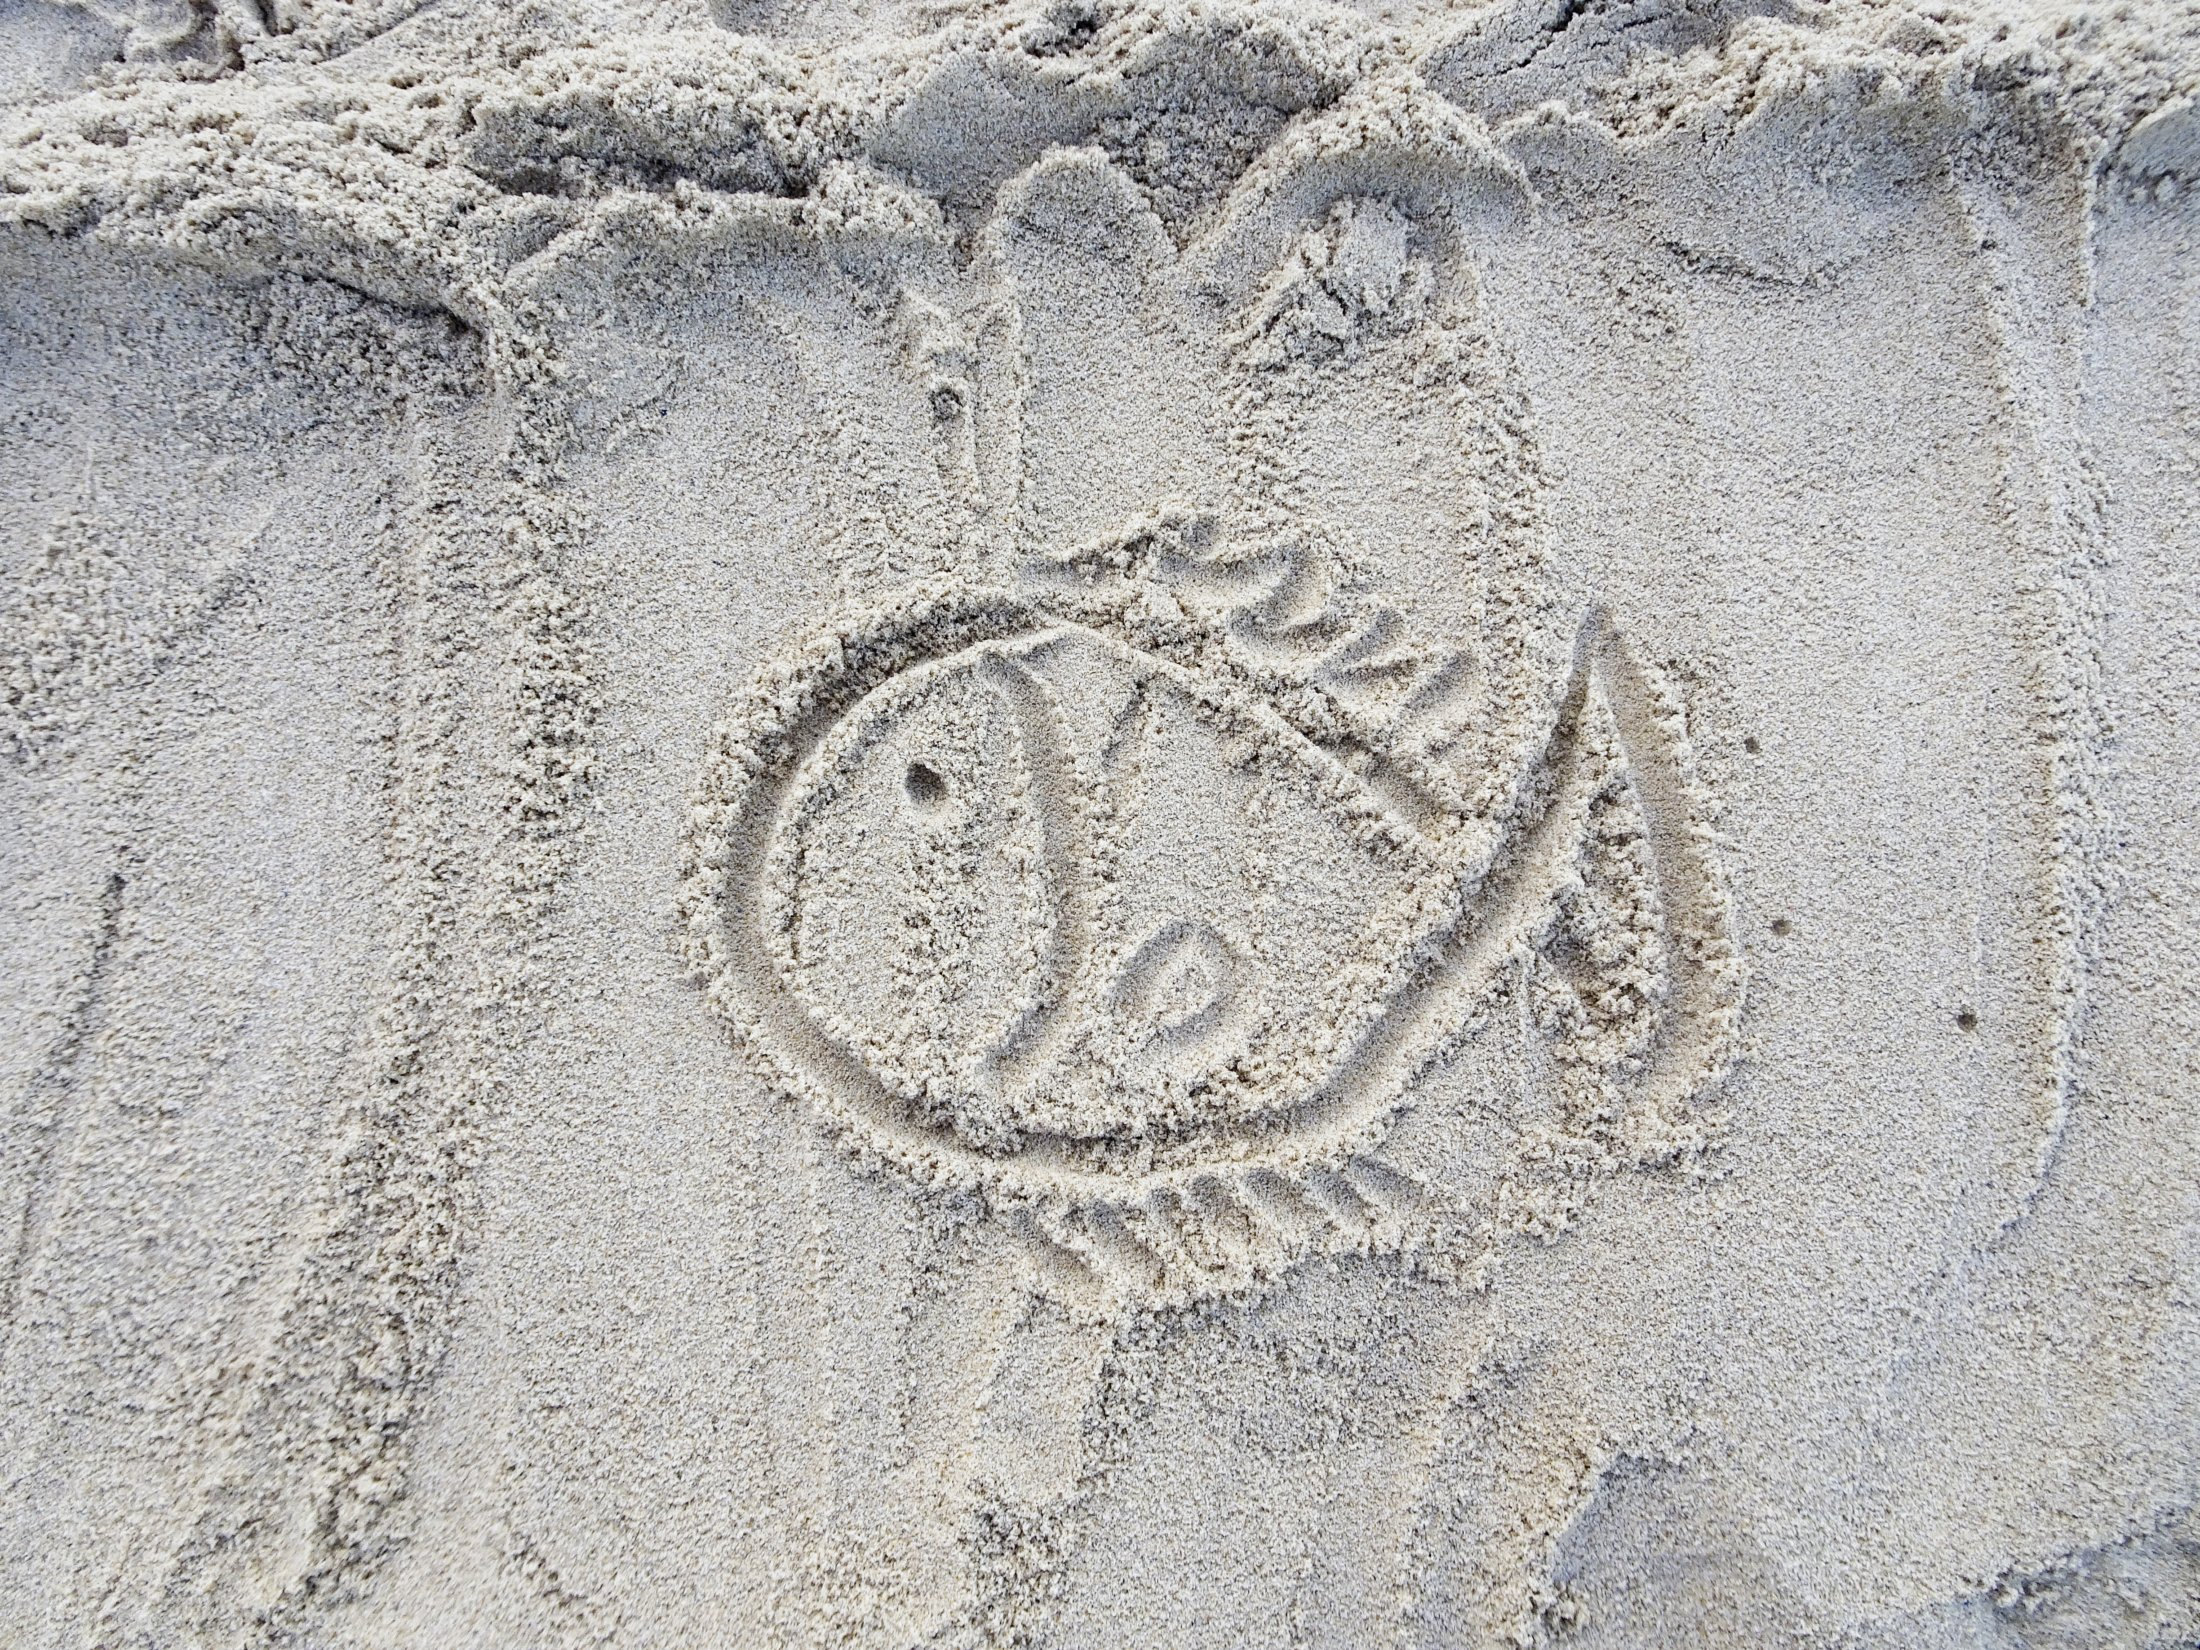 Drawing of marine life in the sand